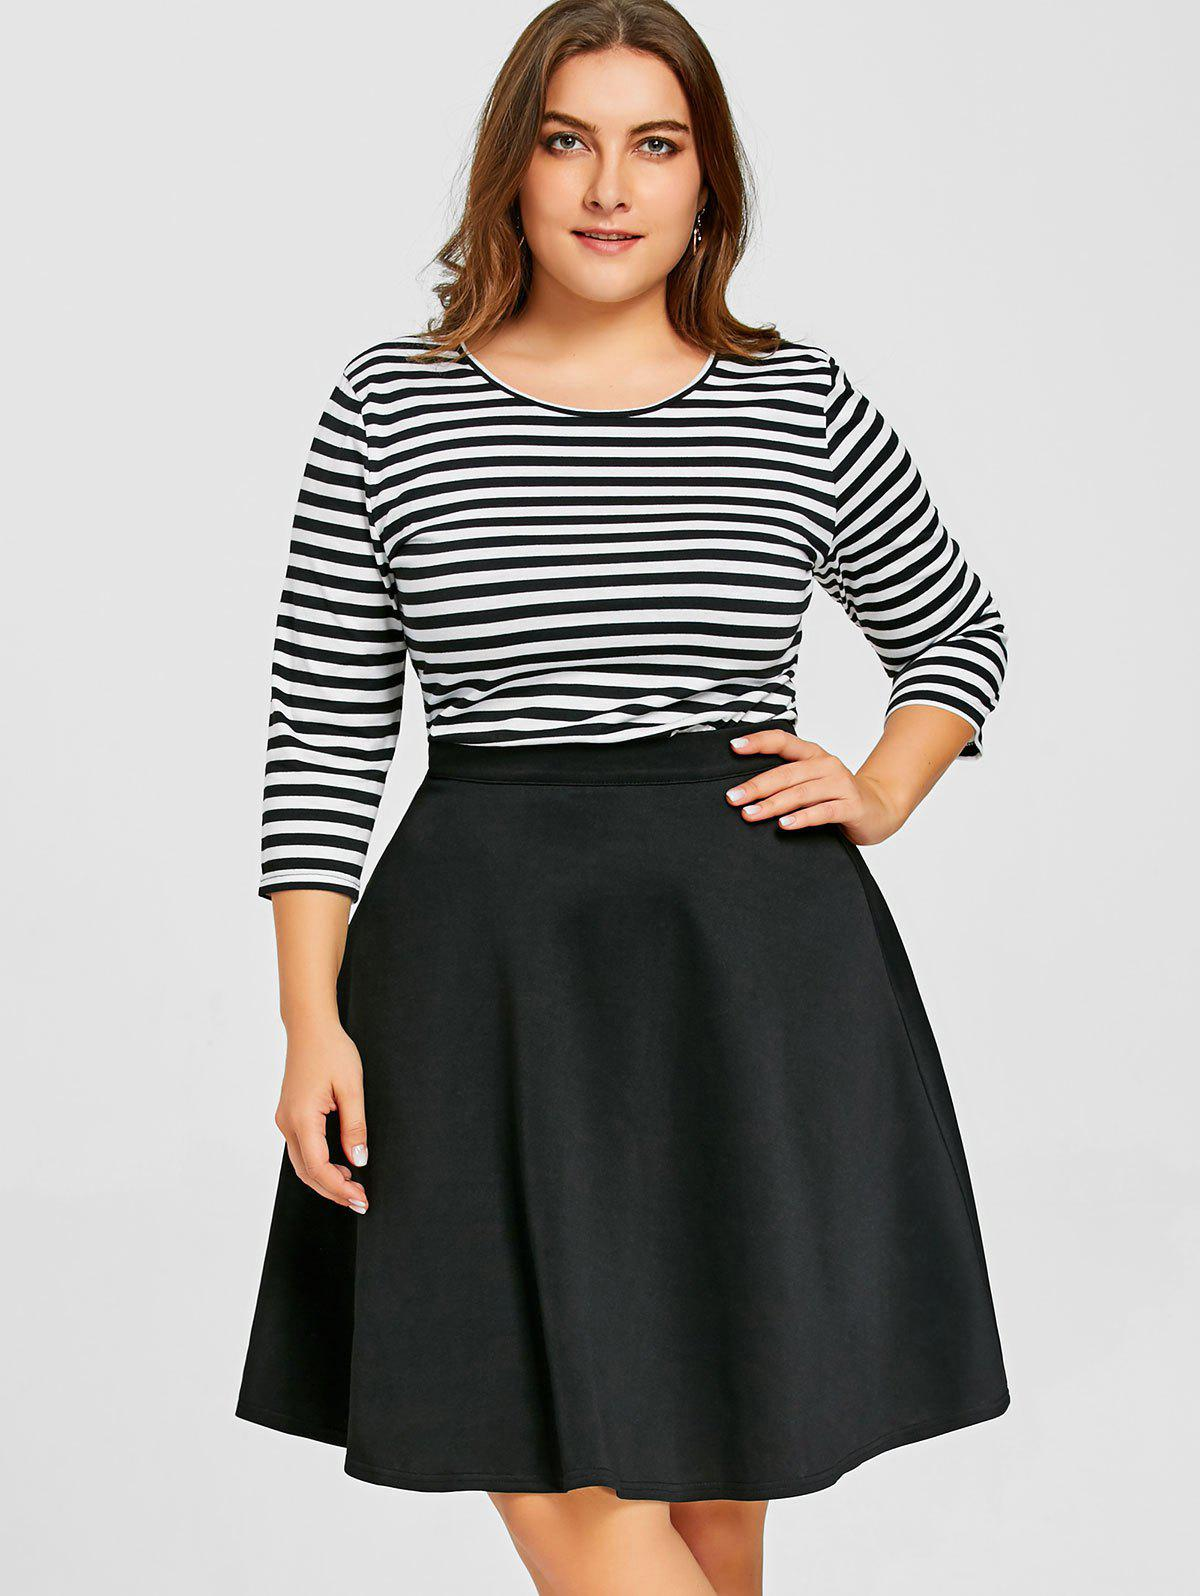 Best Striped Top with Plus Size Skirt